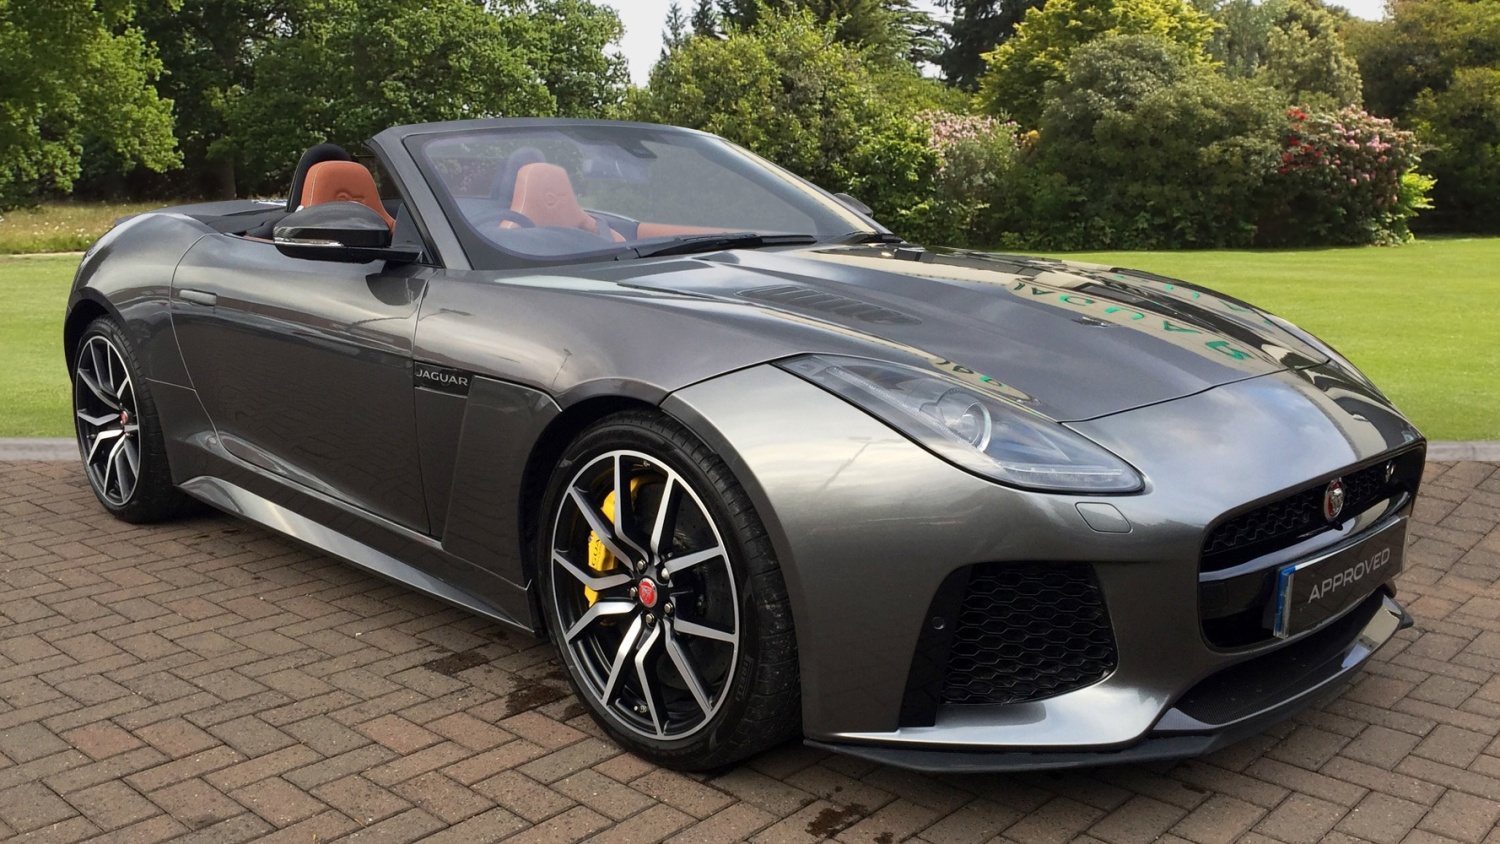 used jaguar f type 5 0 supercharged v8 svr 2dr auto awd petrol convertible for sale farnell. Black Bedroom Furniture Sets. Home Design Ideas